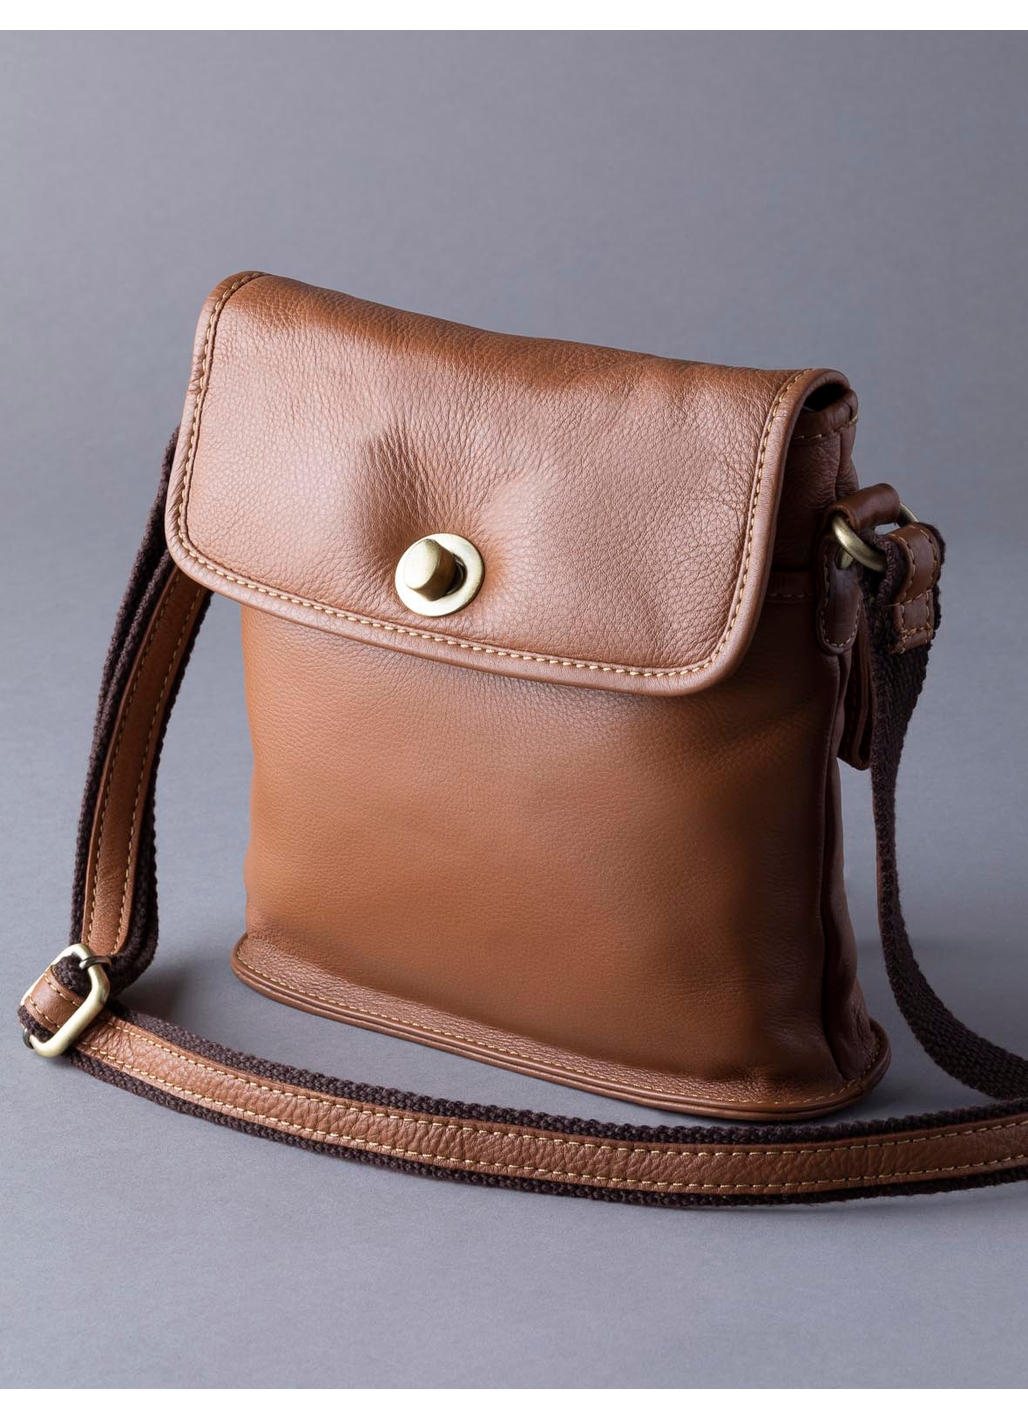 Rickerby Leather Turn Lock Cross Body Bag in Cognac